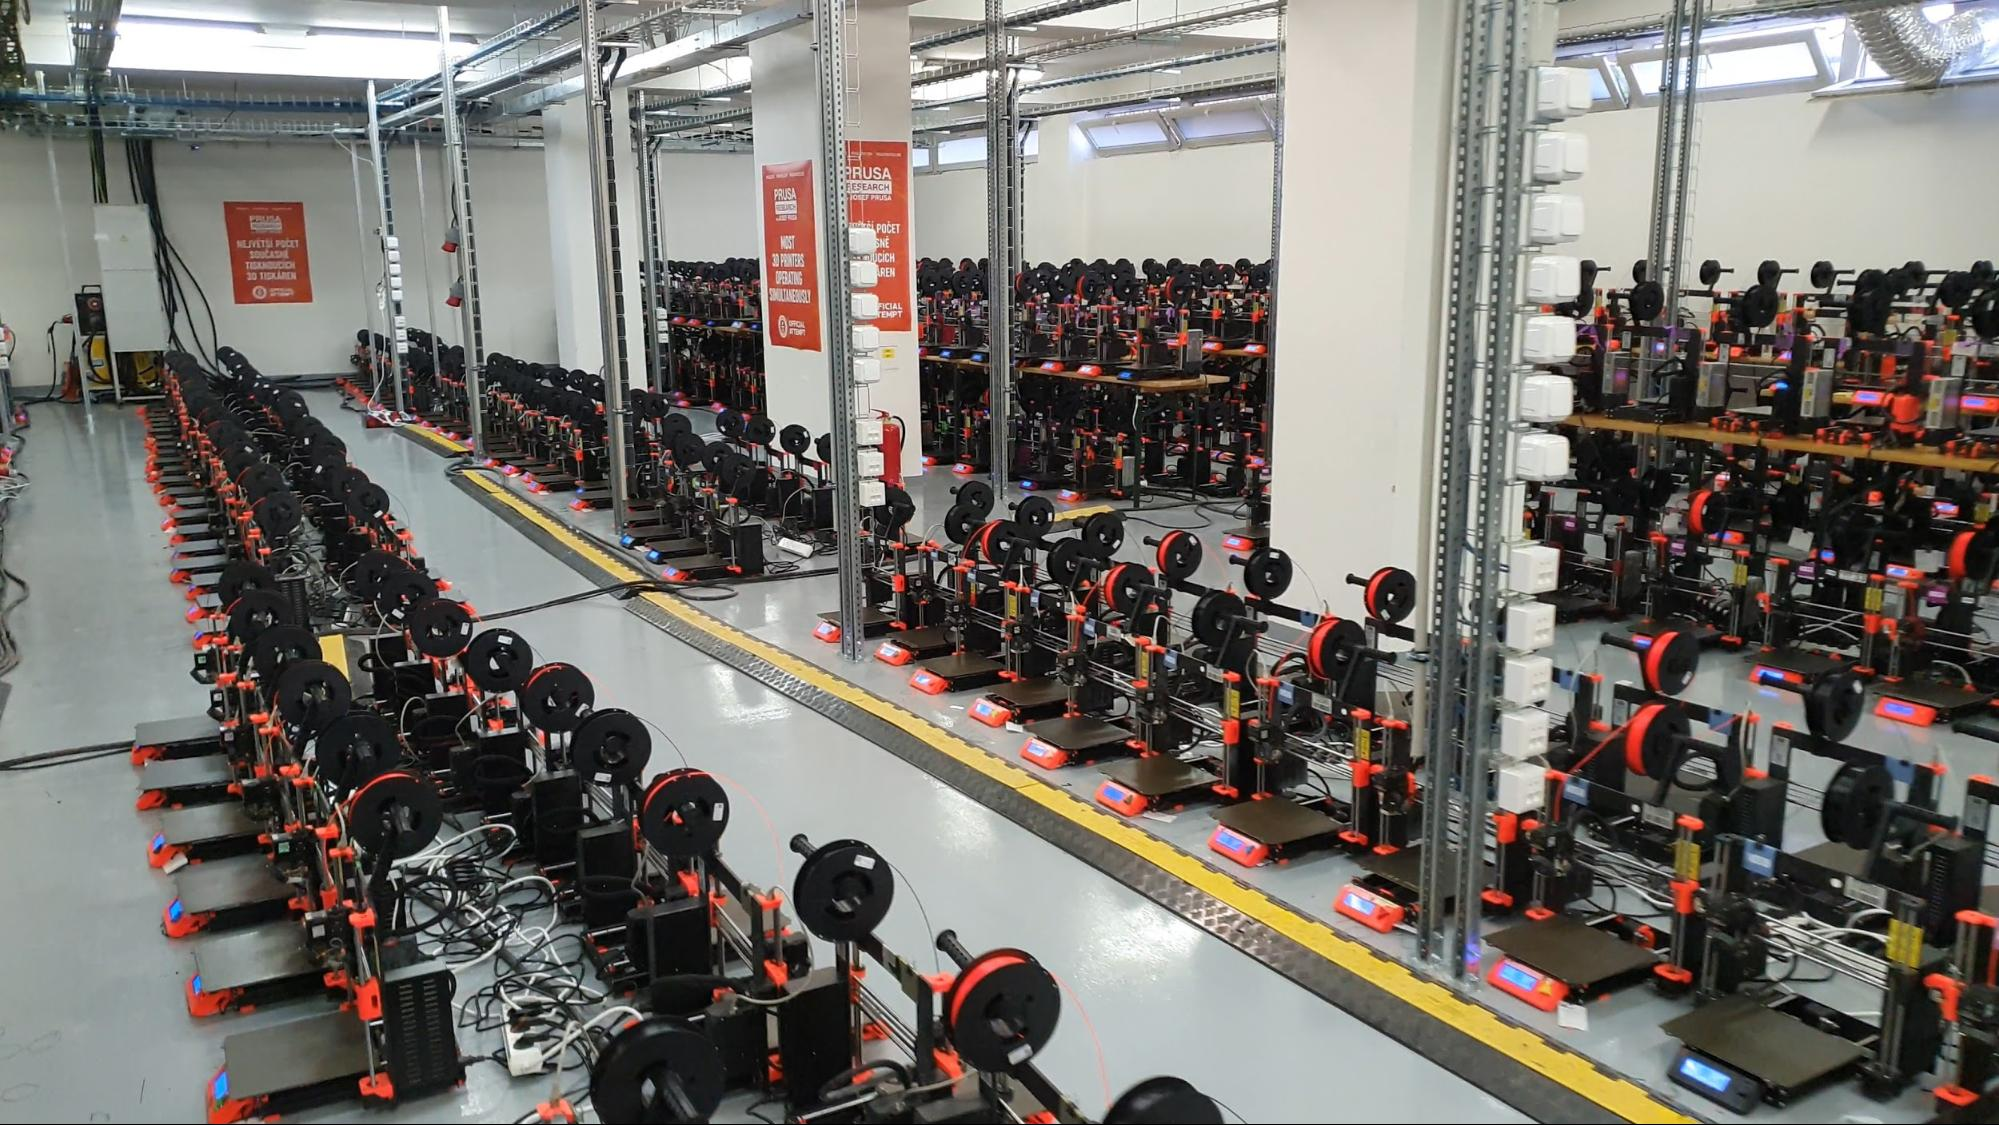 Prusa Research's record for the most amount of 3D printers operating simultaneously. Photo via Prusa Research.